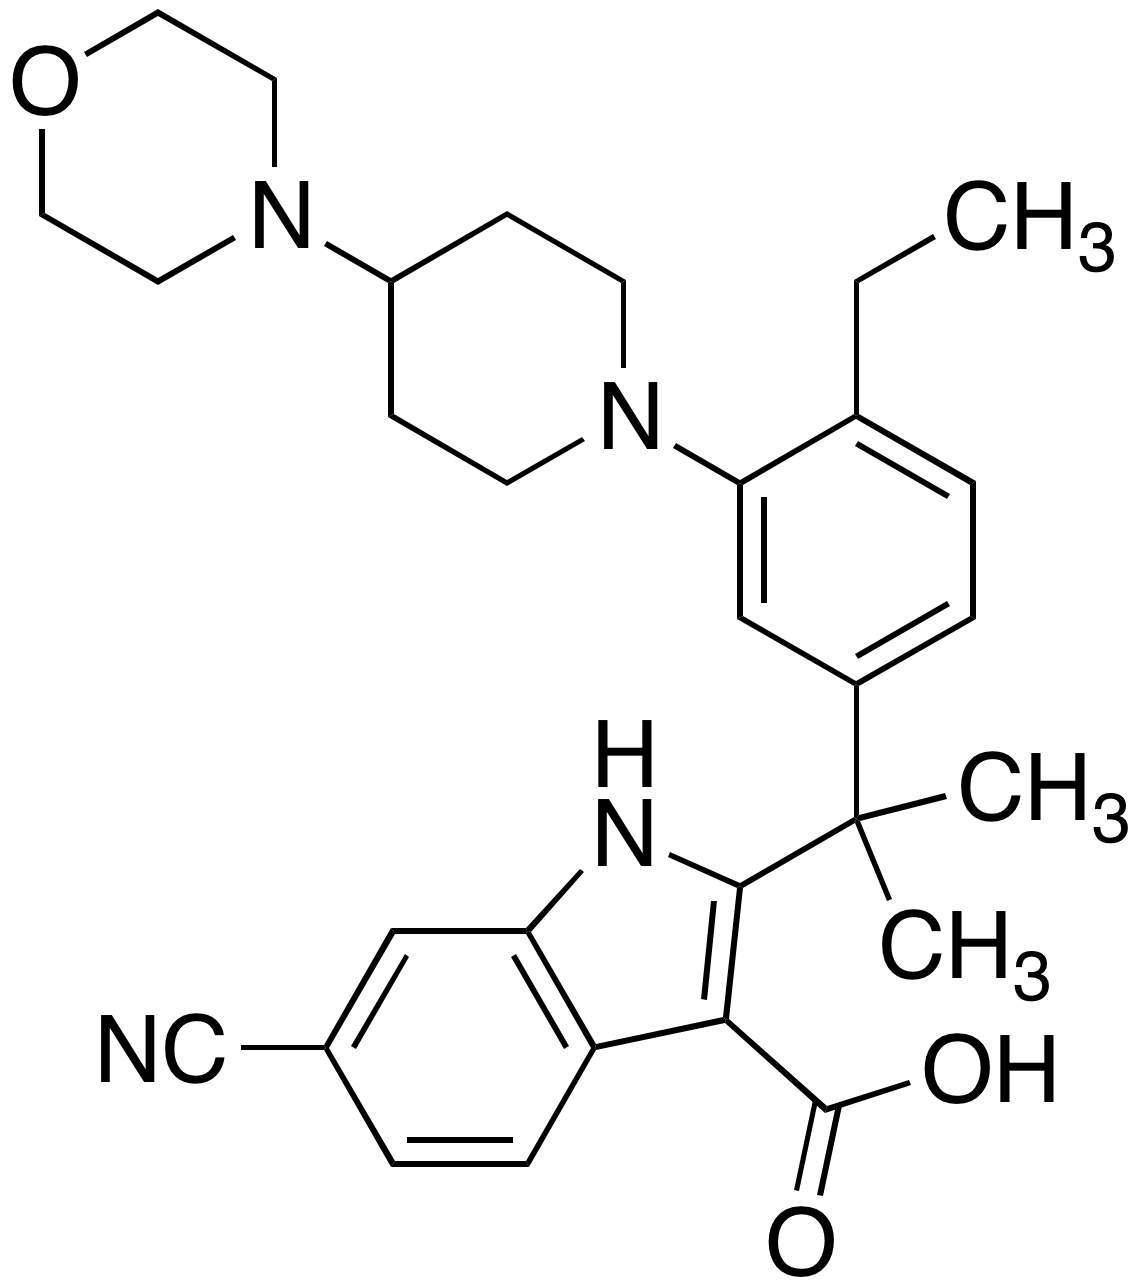 6-Cyano-2-[1-[4-ethyl-3-[4-(4-morpholinyl)-1-piperidinyl]phenyl]-1-methylethyl]-1H-indole-3-carboxylic Acid